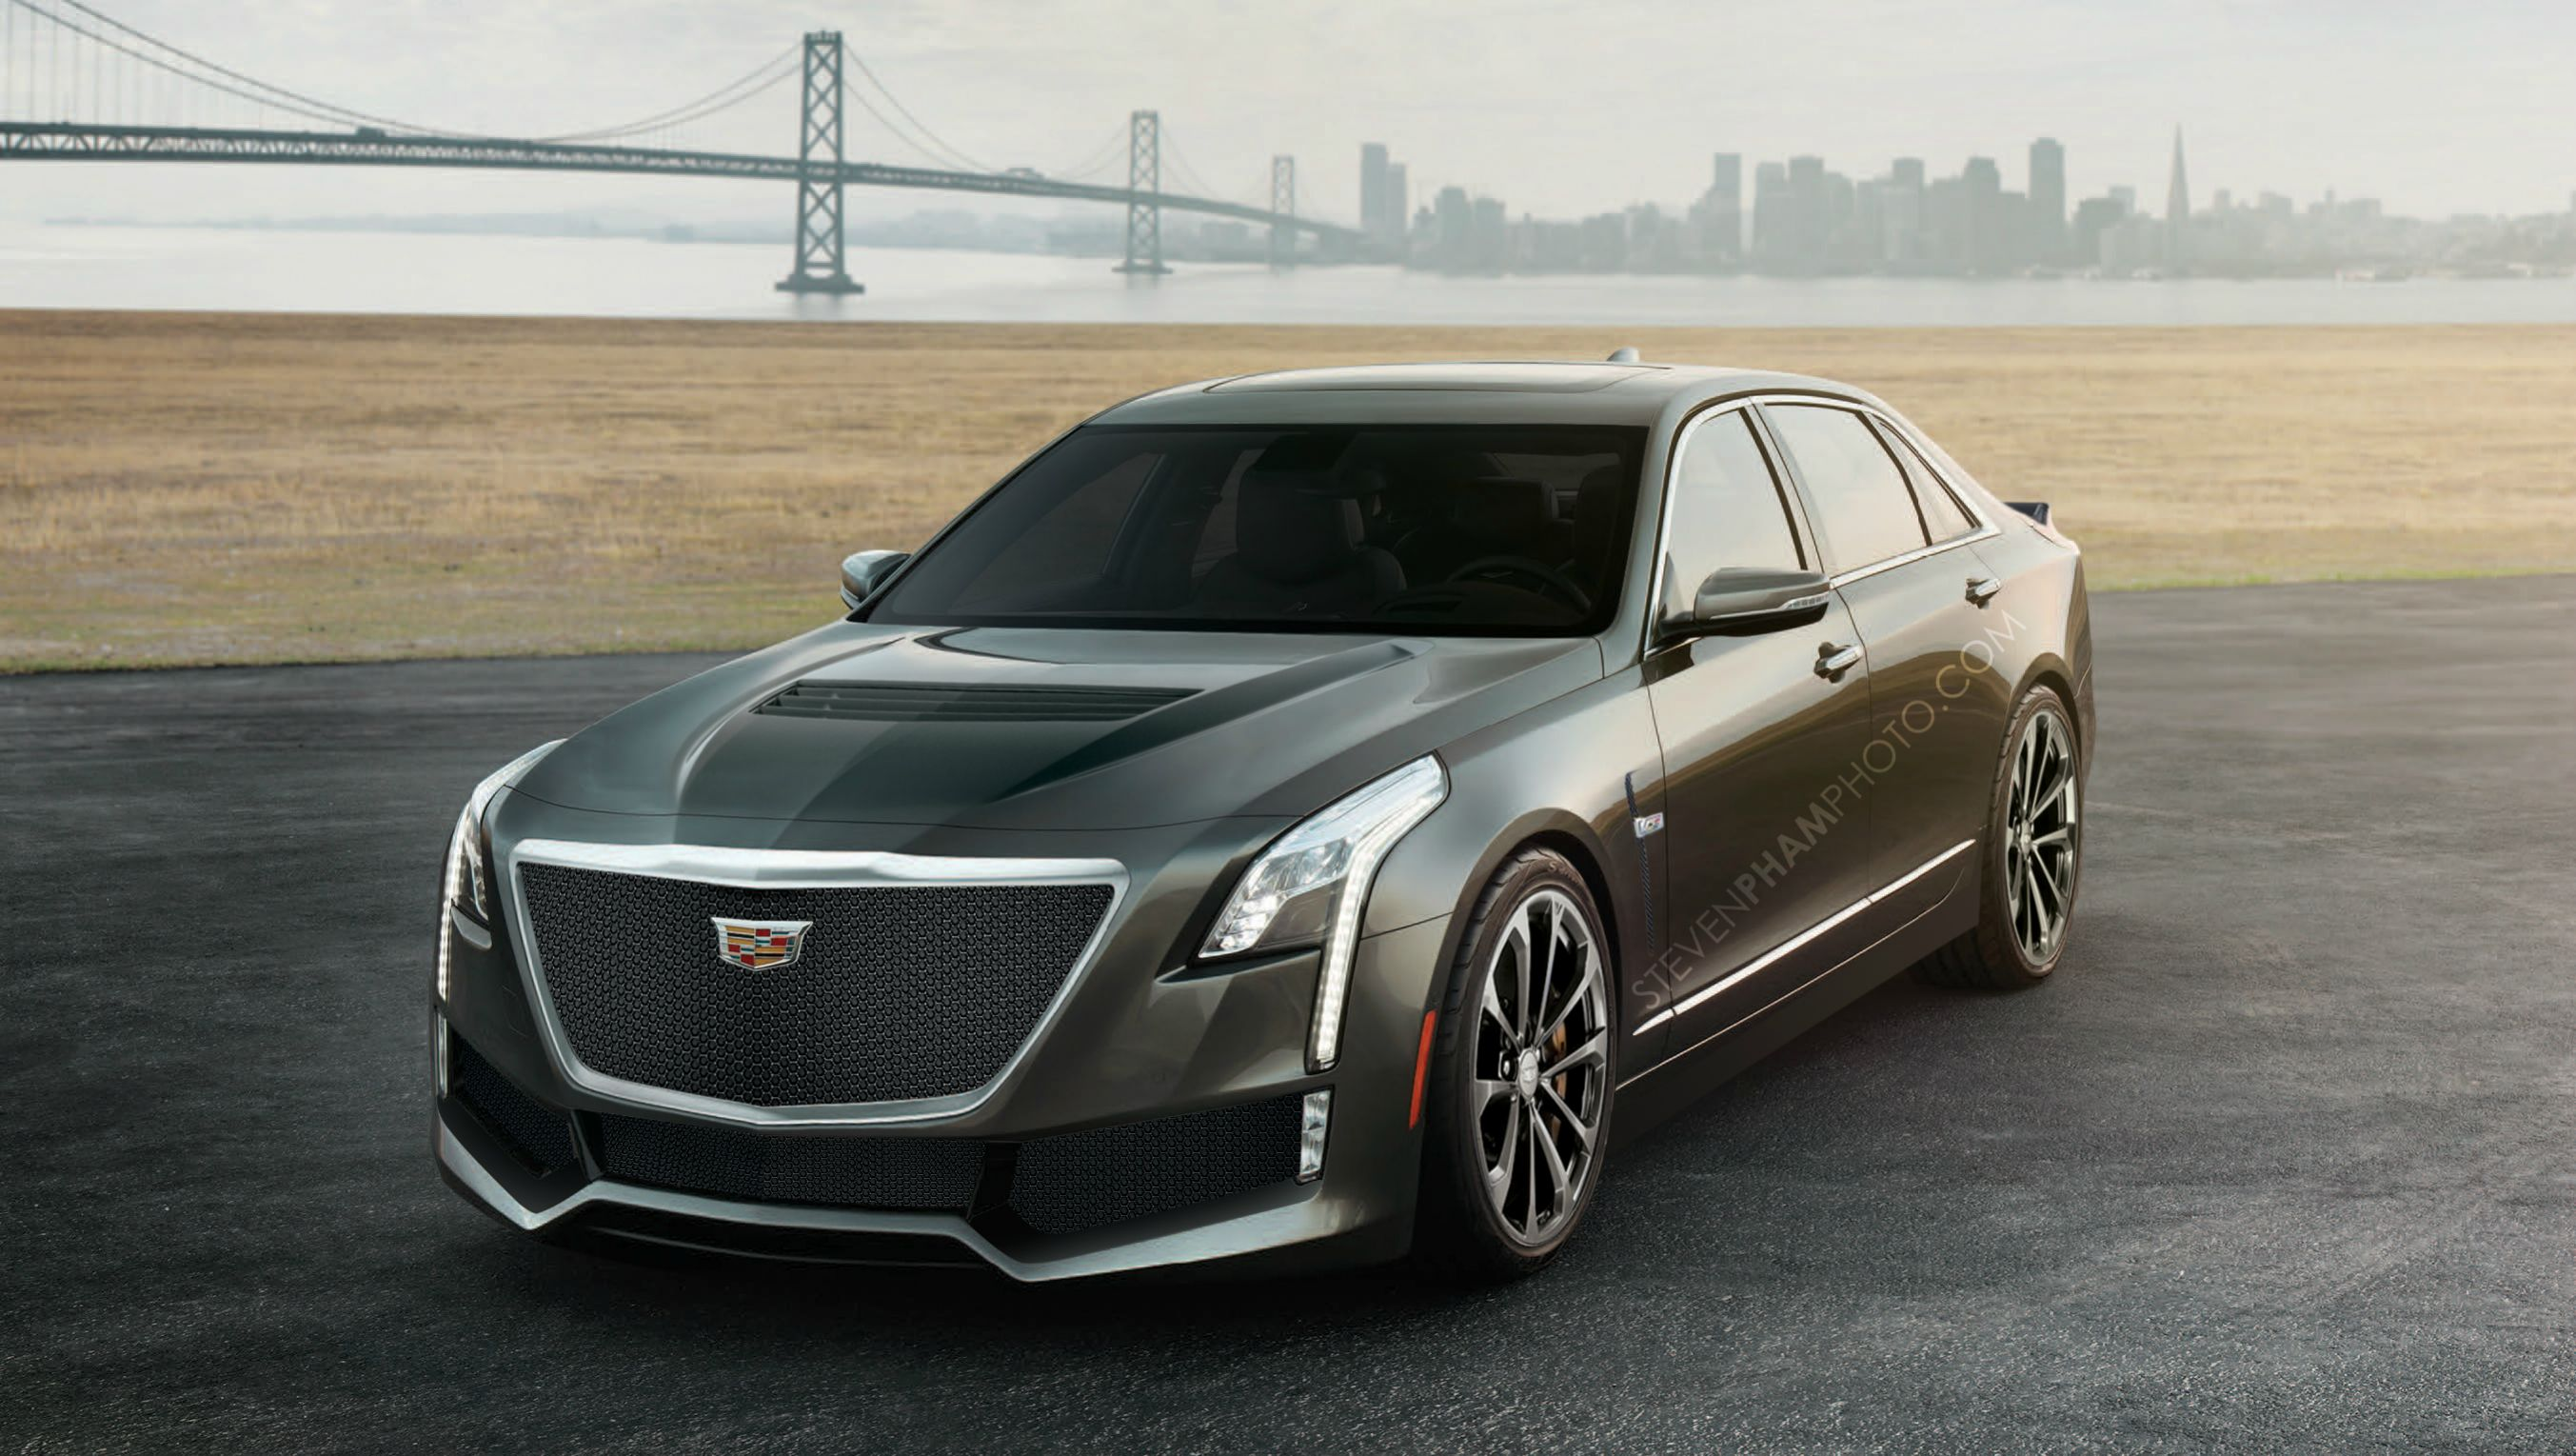 Cadillac CT6-V: Why a Hot CT6 Would Make Sense - autoevolution